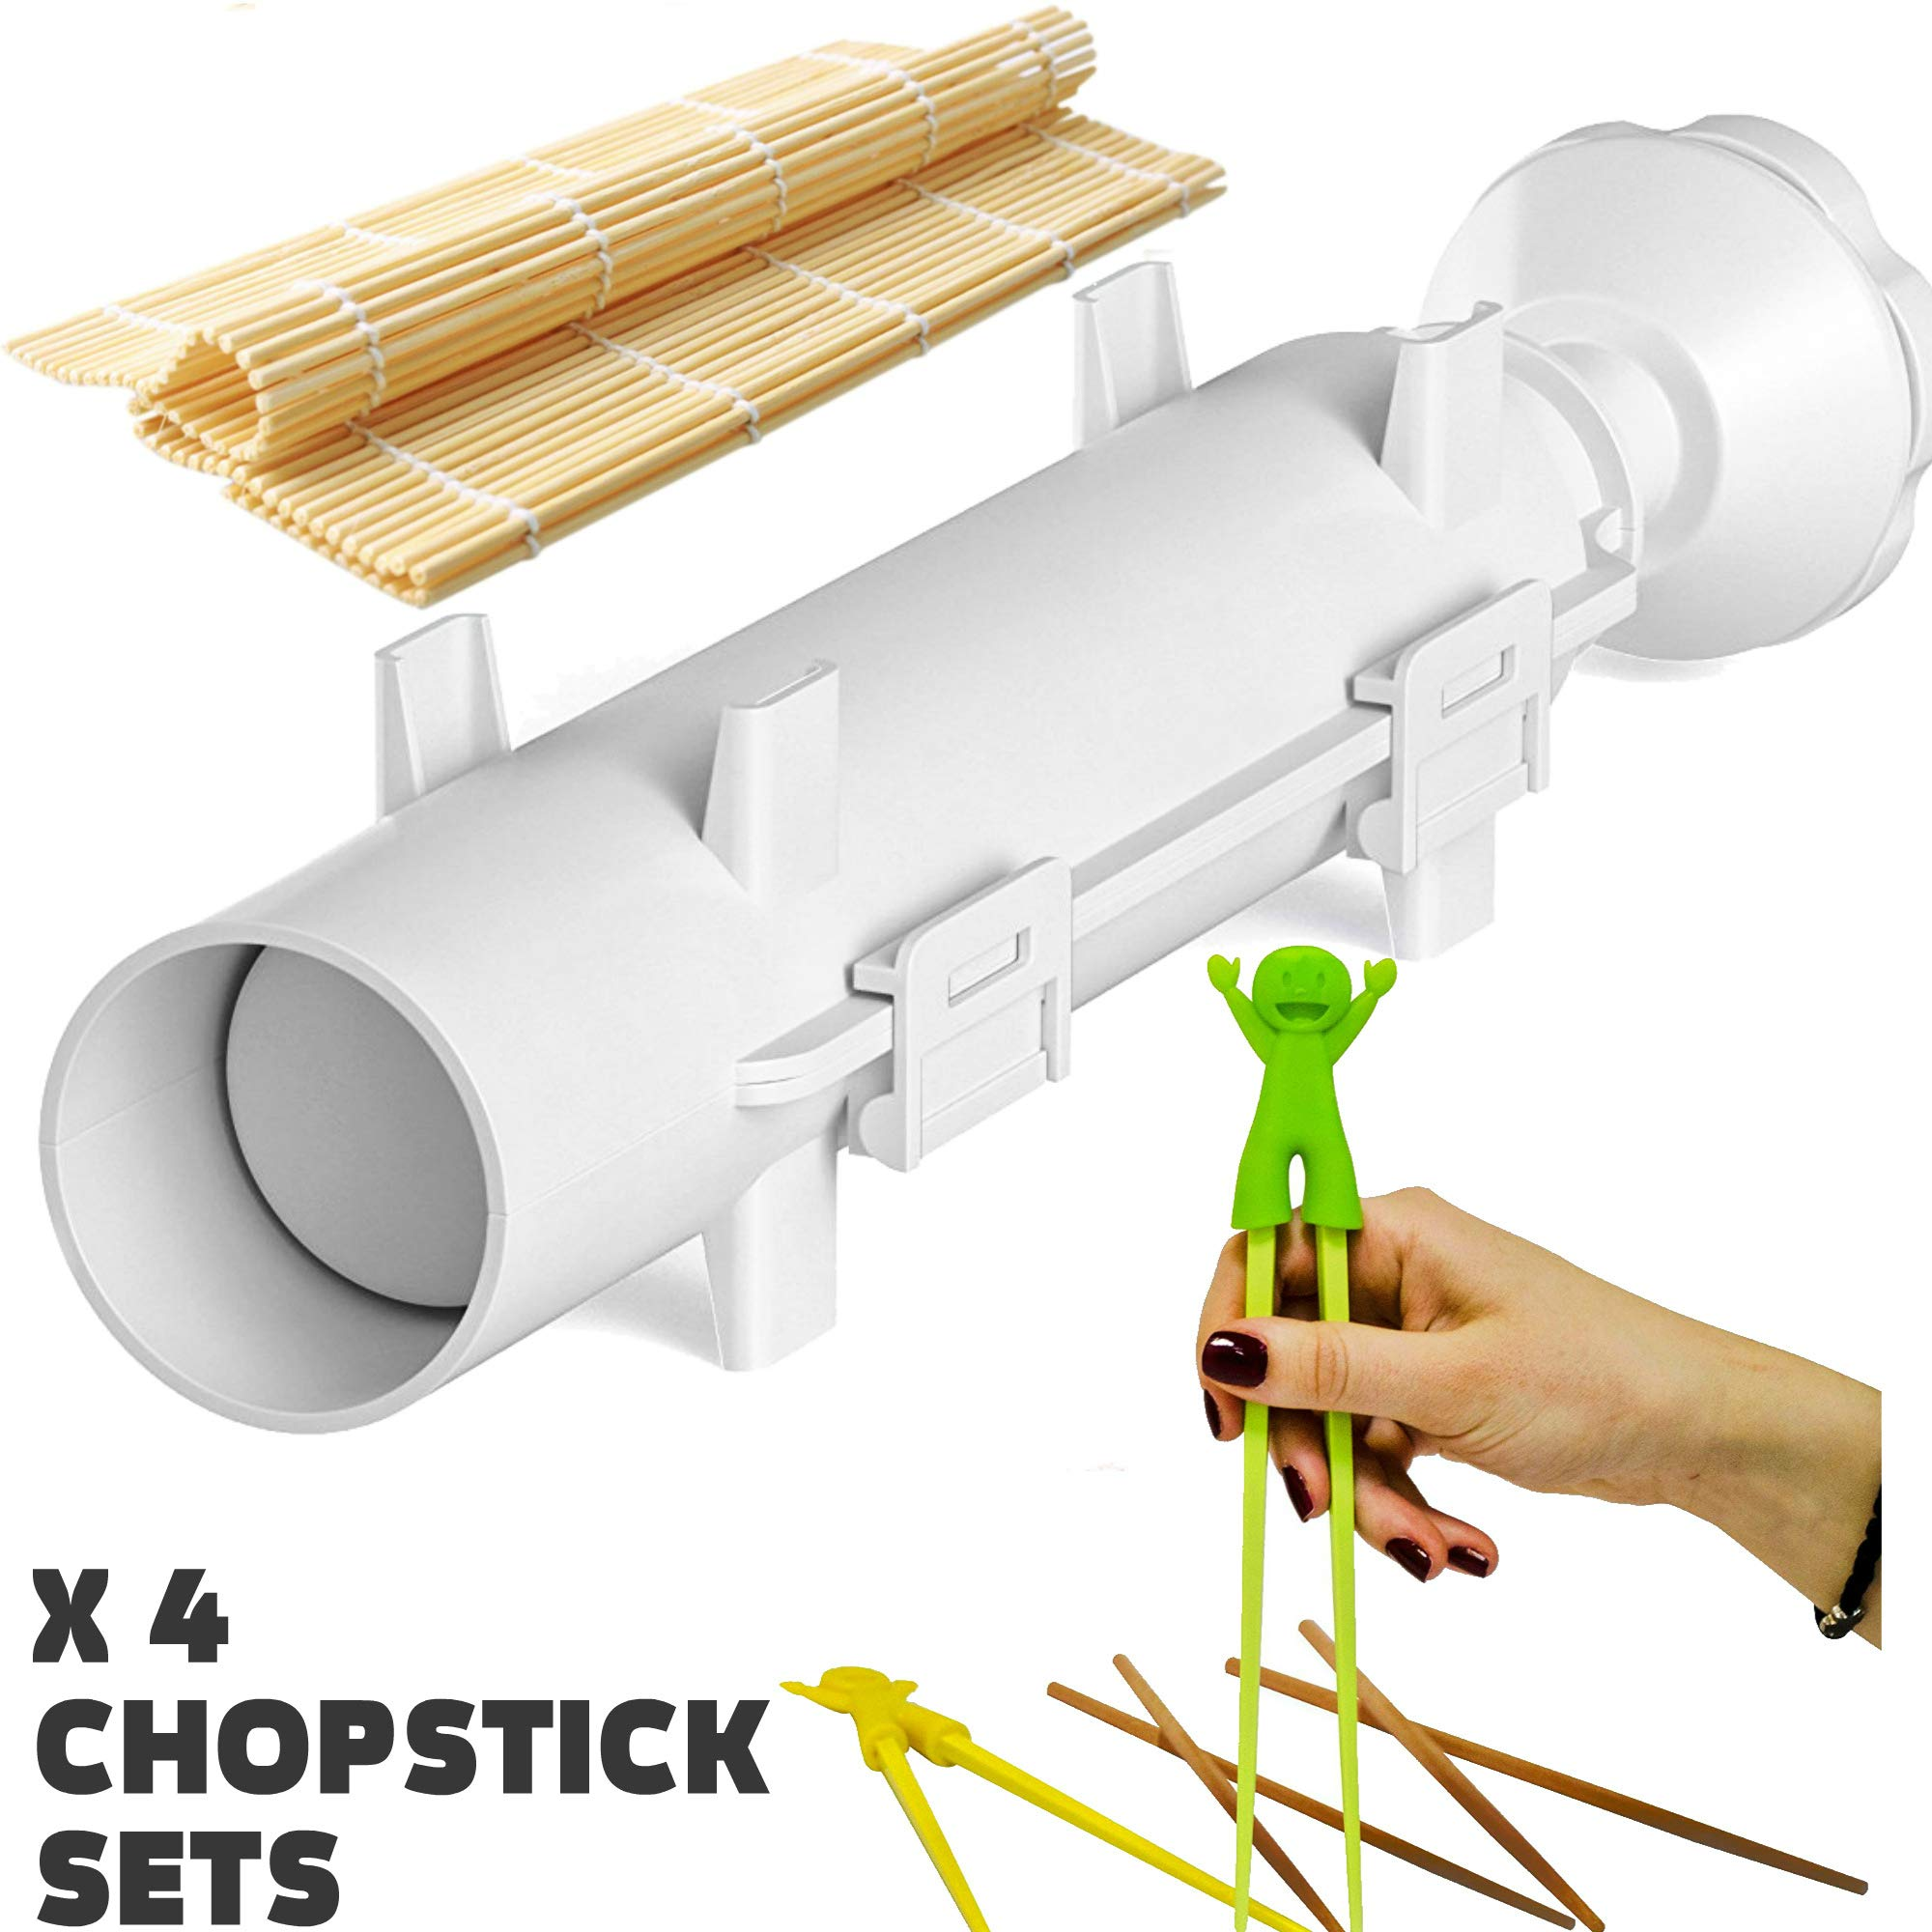 Sushi Bazooka, Sushi Mat and Two Sets of Bamboo Chopsticks and Silicone Helper (Training) Chopsticks,Kitchen Appliance Machine Rice Roller Making Kit by Cook&Life